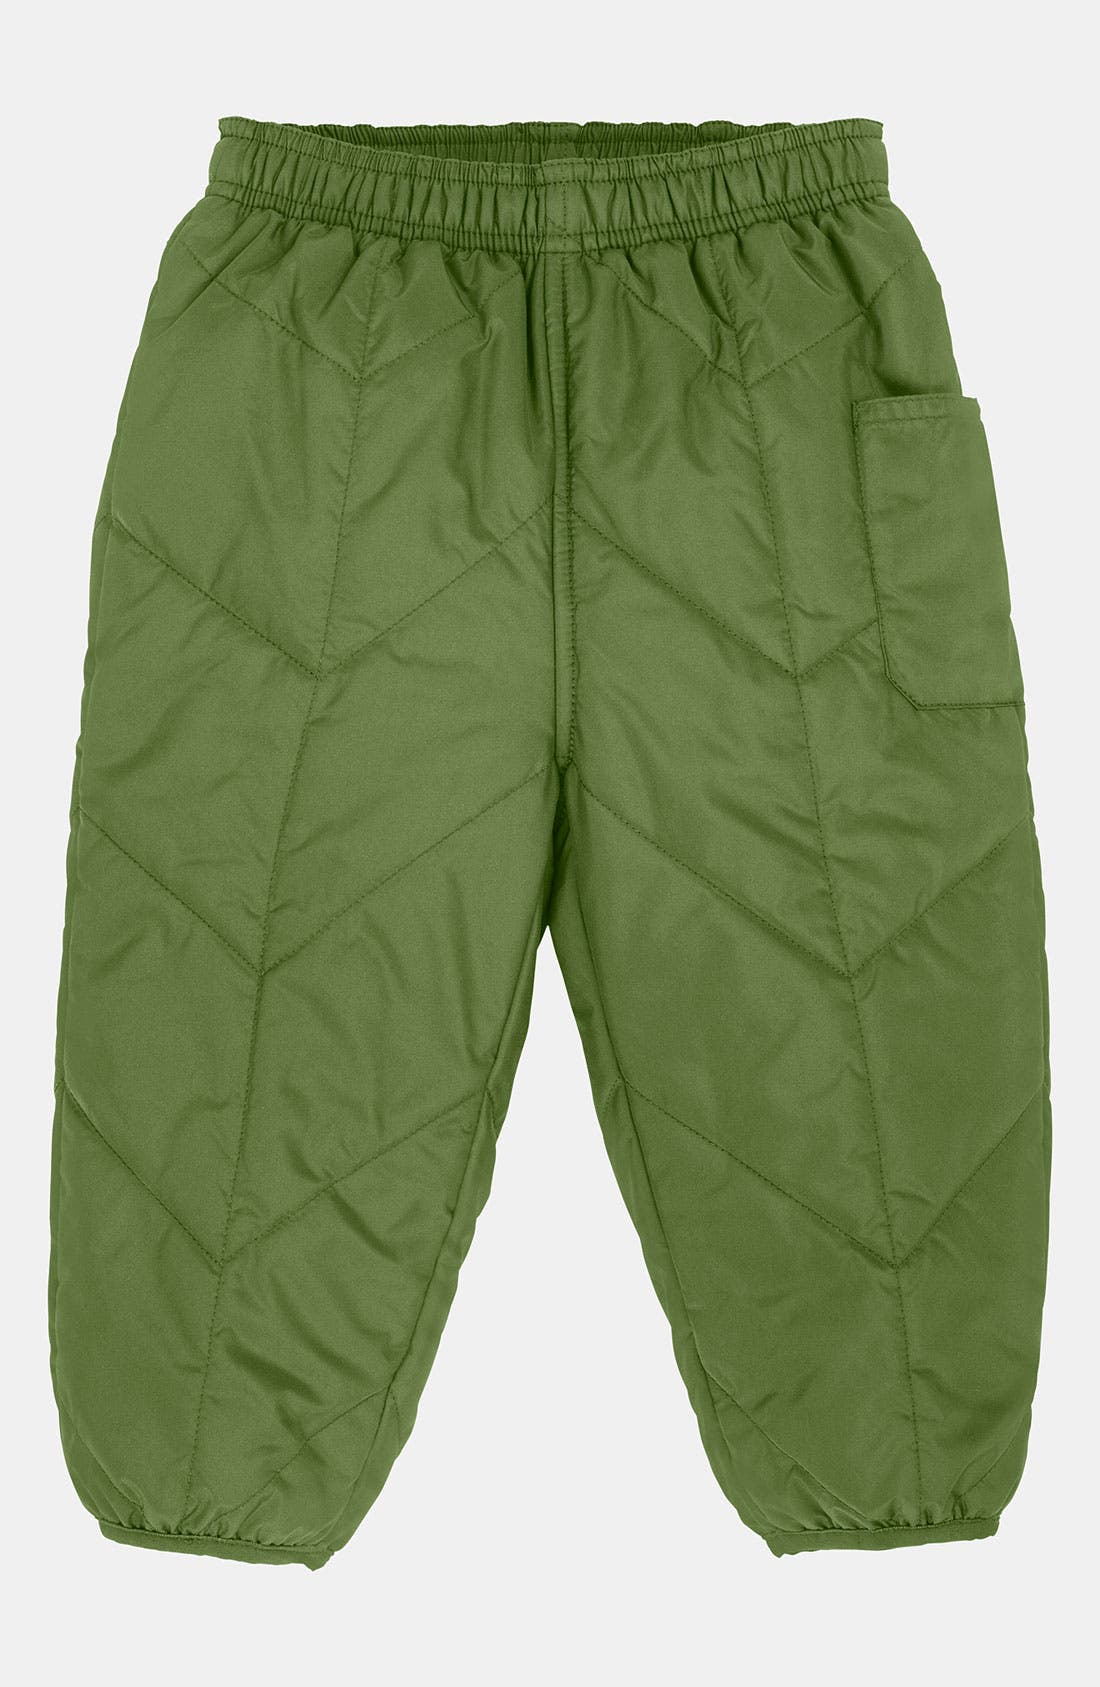 Alternate Image 1 Selected - The North Face 'Perrito' Reversible Snow Pants (Infant)